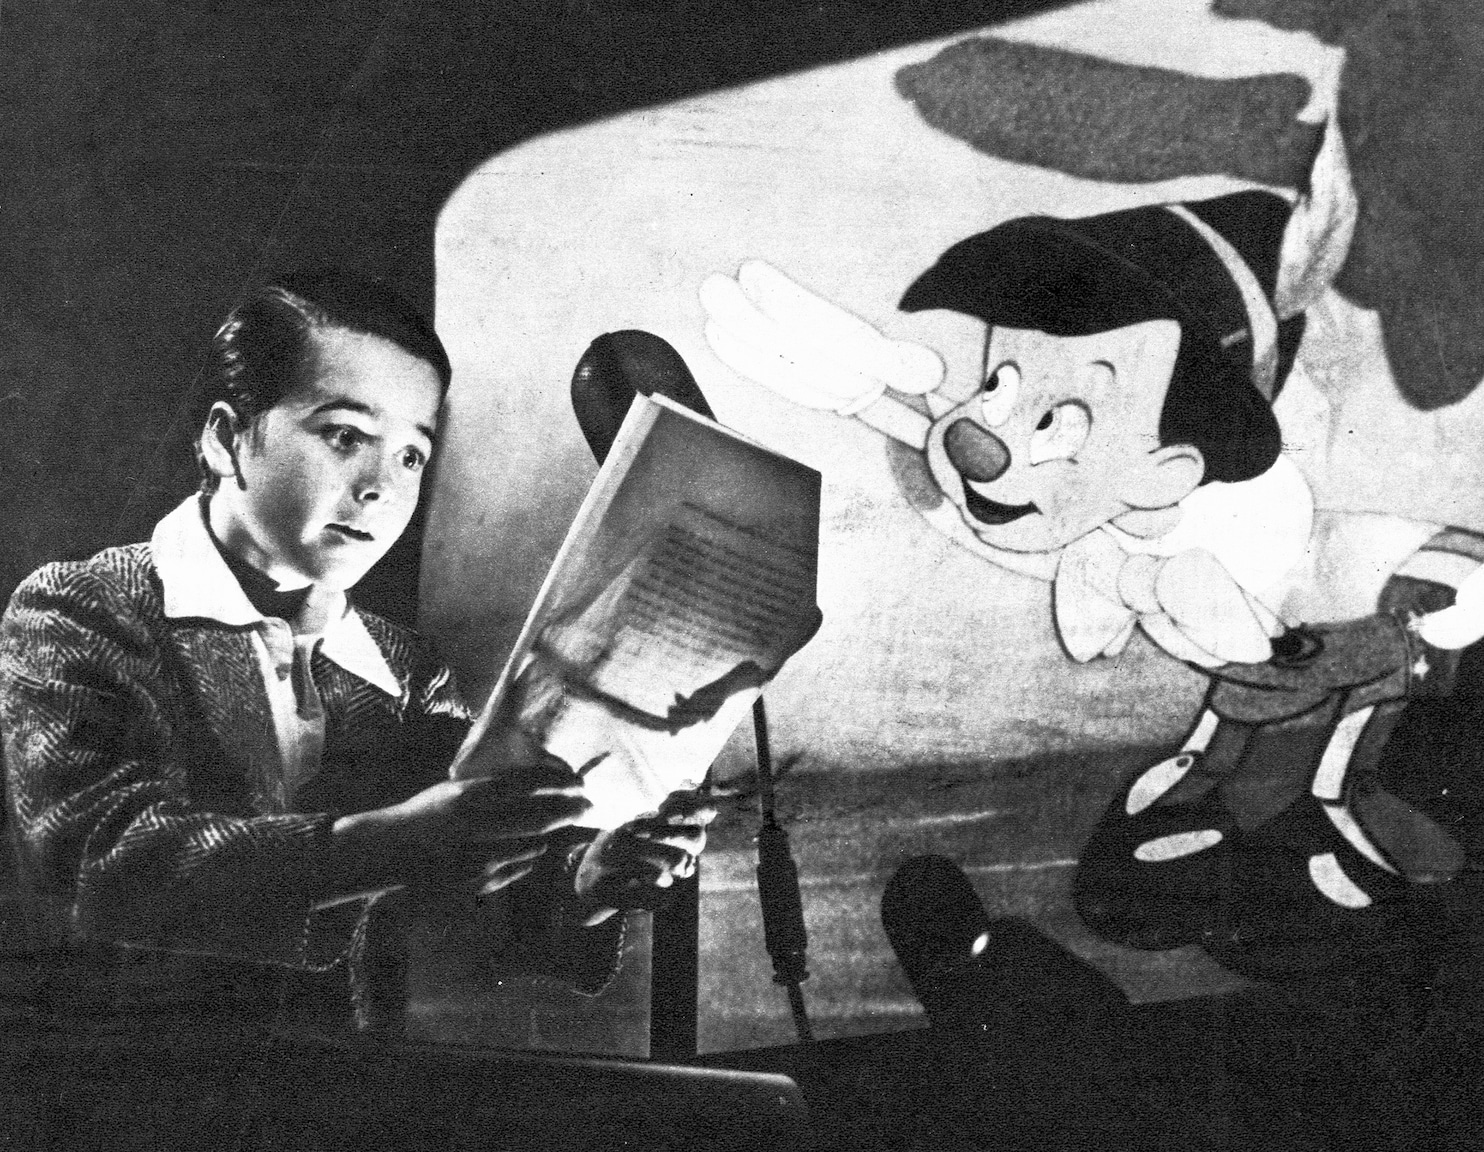 Little Dickie Jones first sees a drawing that Walt made just for him.